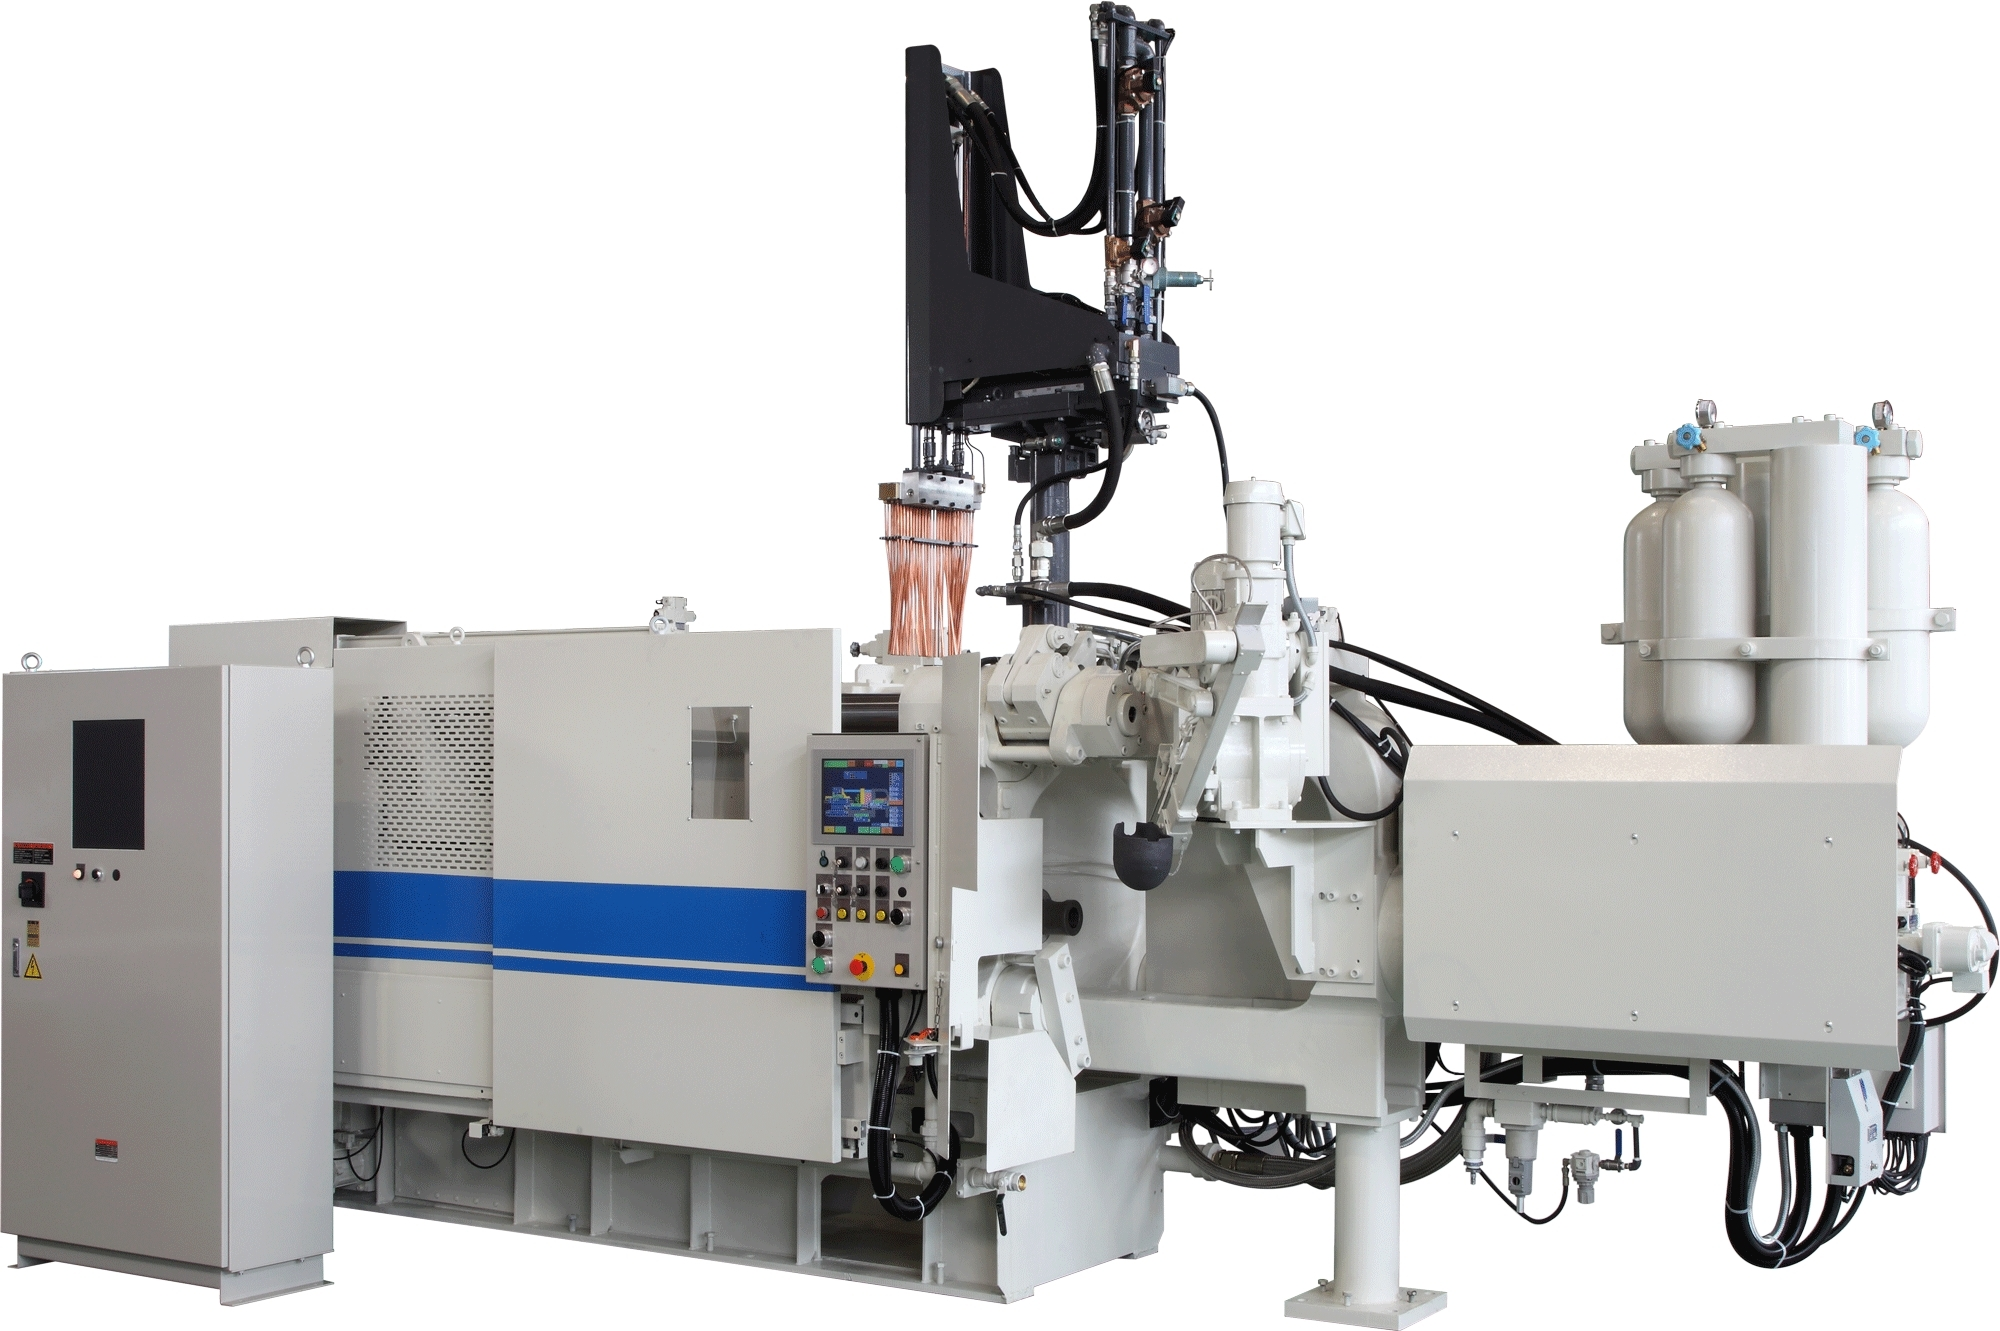 Toshiba Machine Launches New Die Casting Machines for